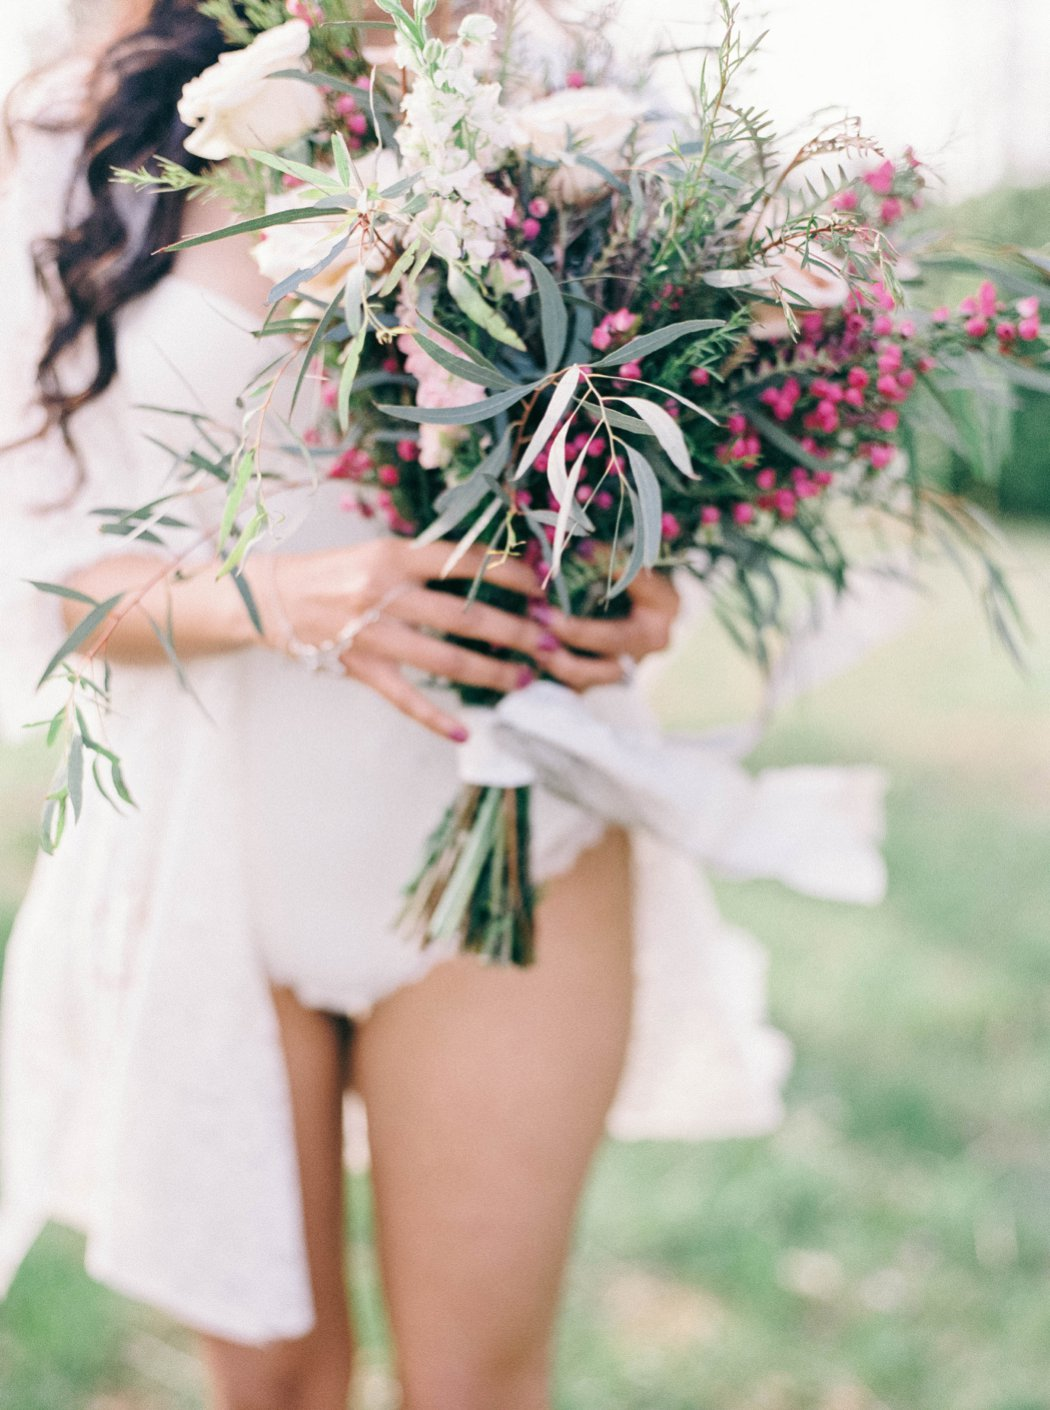 amanda_burnette_richmond_wedding_florist_wedding_organic_flowers_bridal-portrait_boudoir-photo_0004.jpg